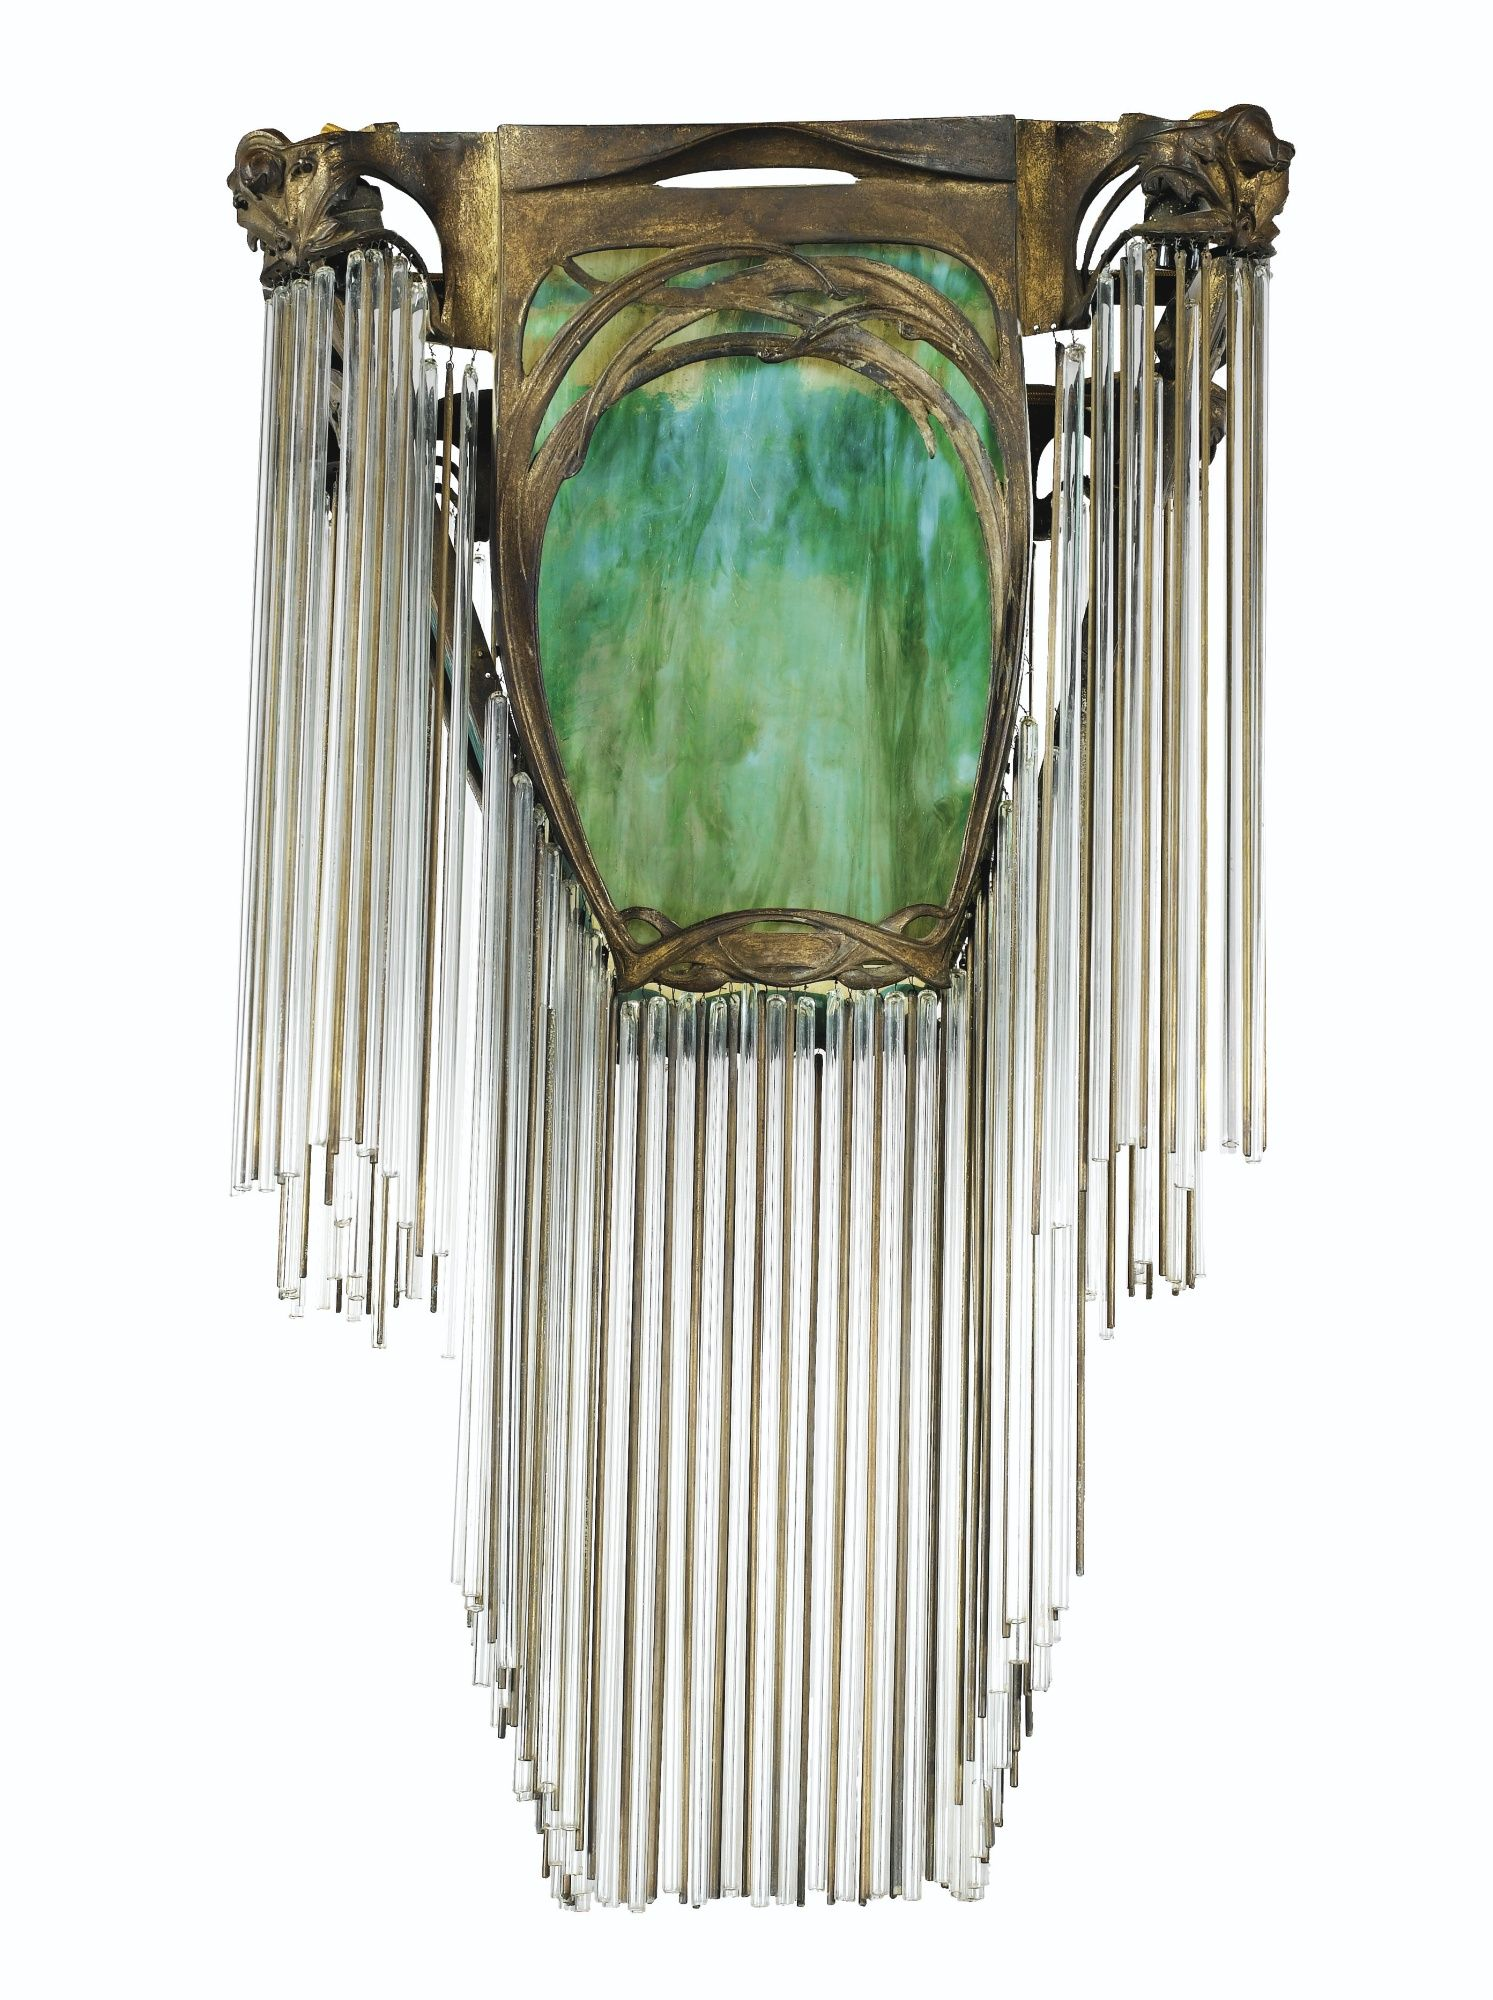 Hector guimard 1867 1942 lustre vers 1900 1910 a bronze glass hector guimard 1867 1942 lustre vers 1900 1910 a bronze glass metal and crystal ceiling light by hector guimard circa 1900 1910 aloadofball Image collections